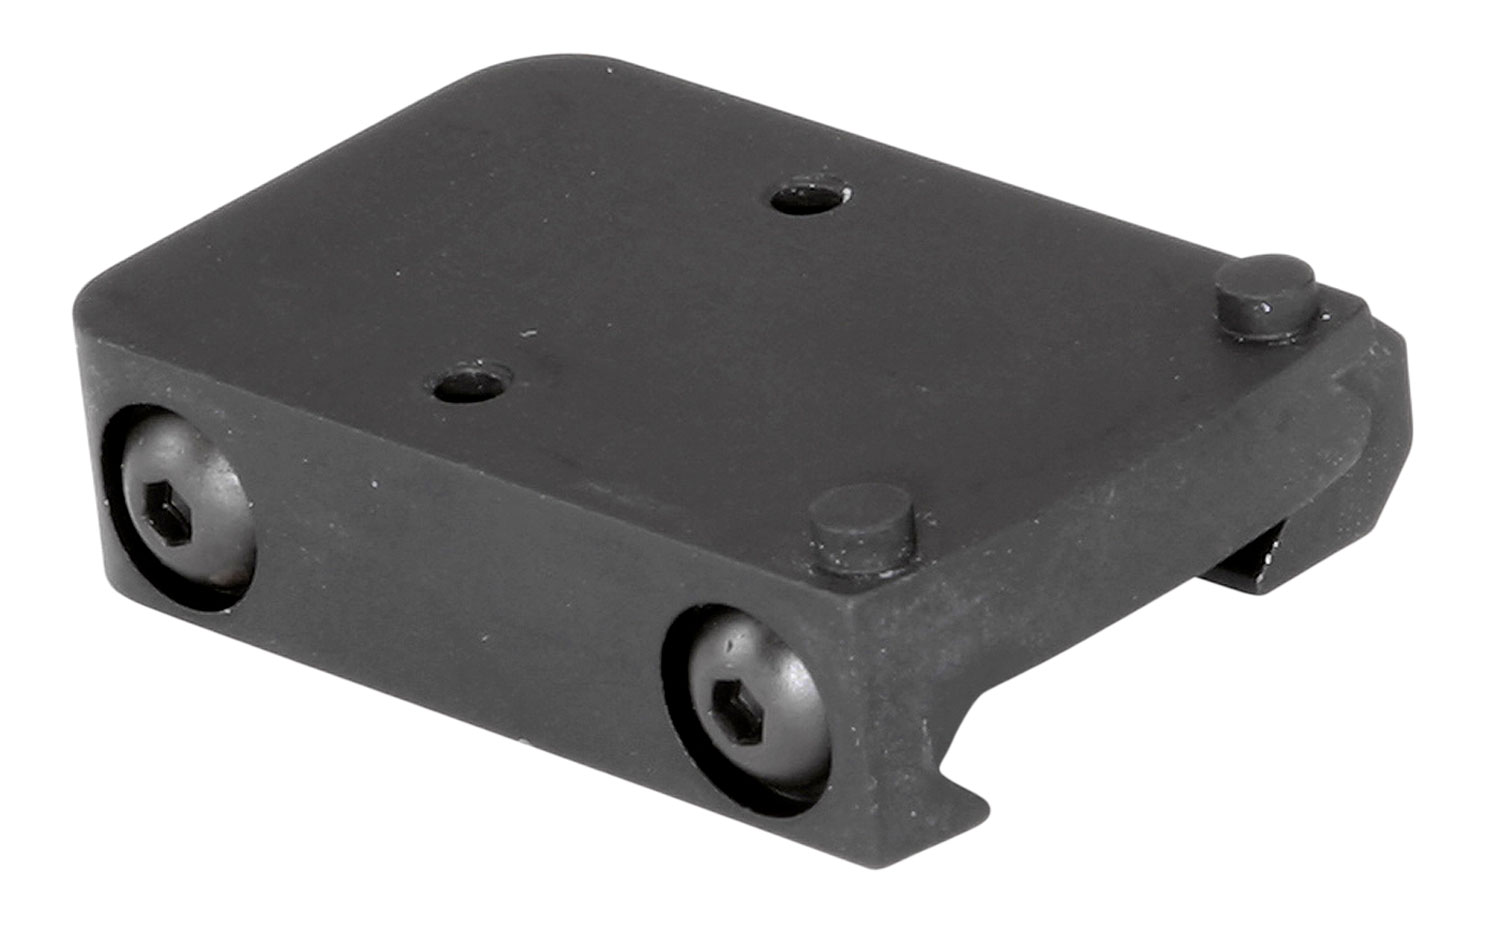 Trijicon AC32004 RMR Mount For RMR Picatinny Style Black Finish